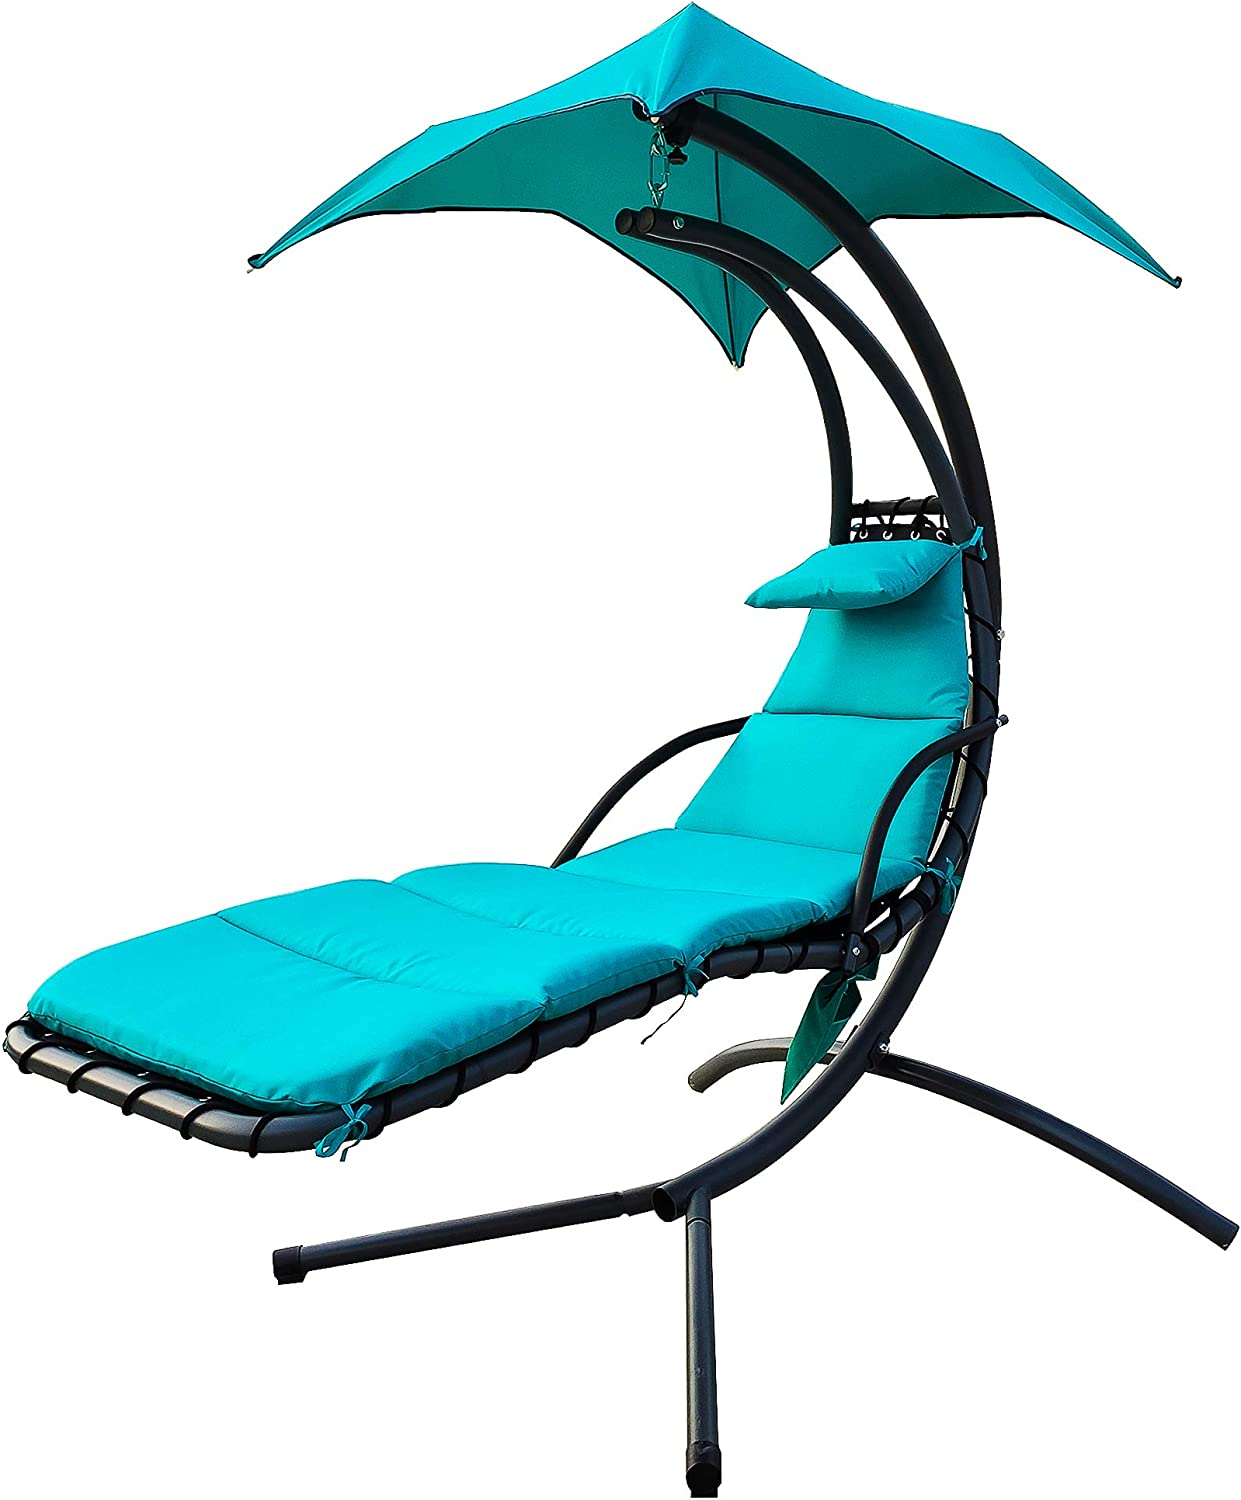 BalanceFrom Hanging Curved Chaise Lounge Chair Swing with Cushion, Pillow, Canopy, Stand and Storage Pouch, 330-Pound Capacity, Aqua : Sports & Outdoors